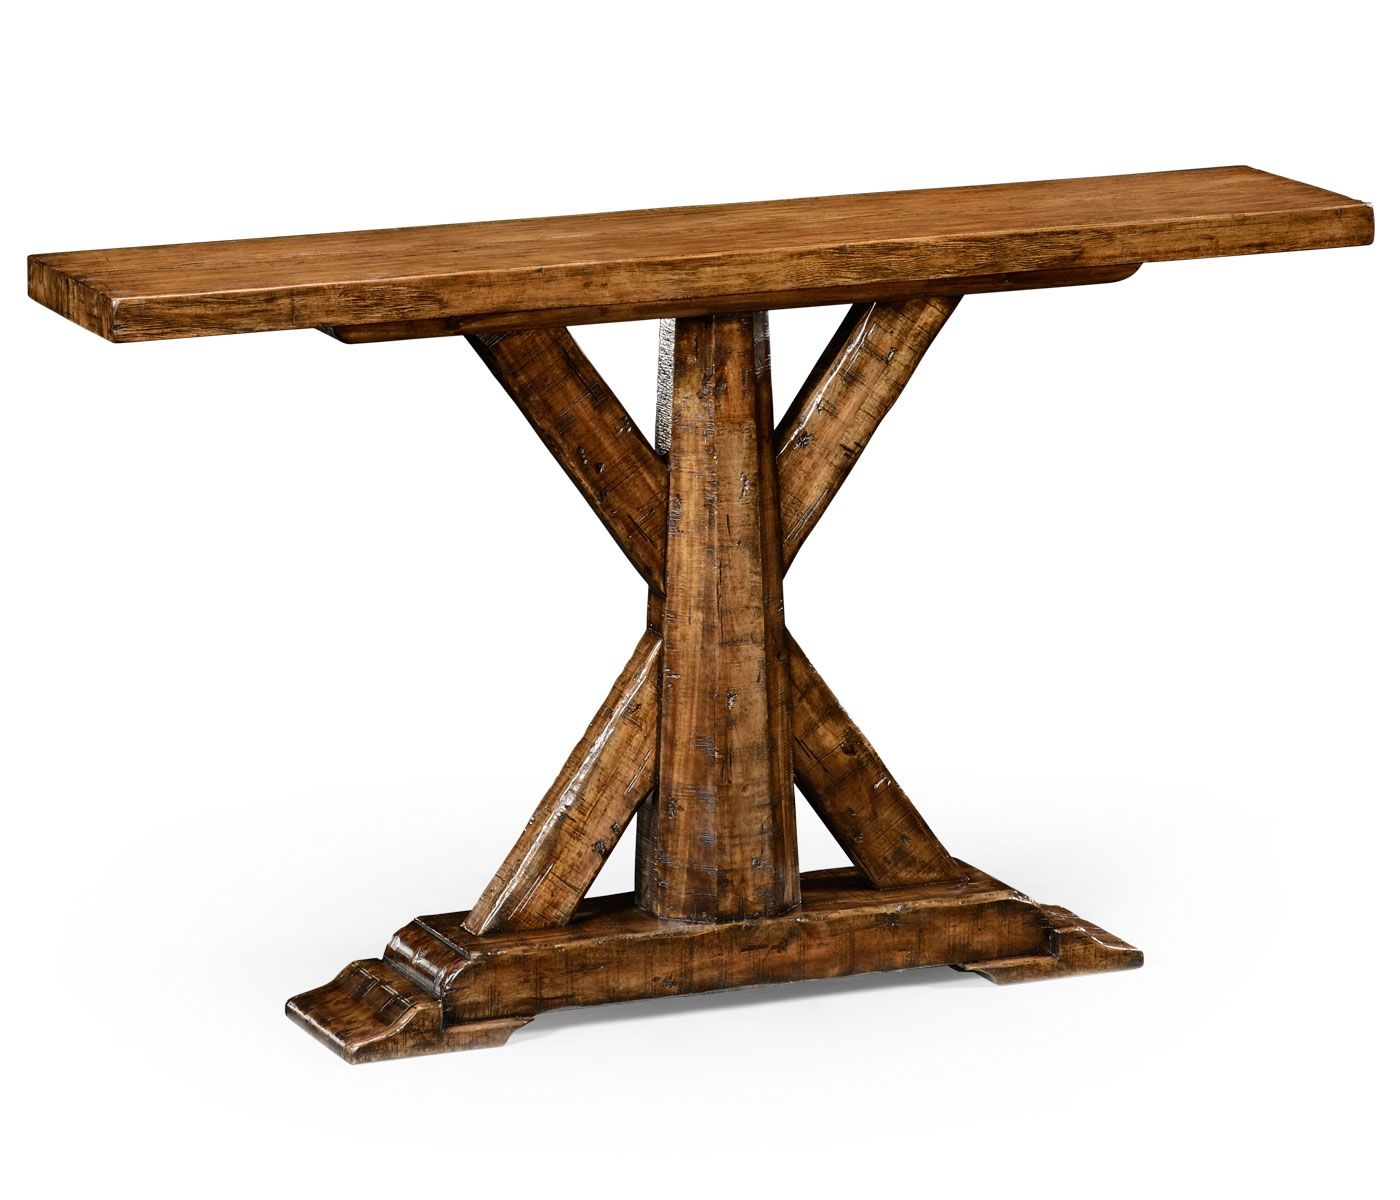 Country style console table httpargharts pinterest country style console table geotapseo Gallery